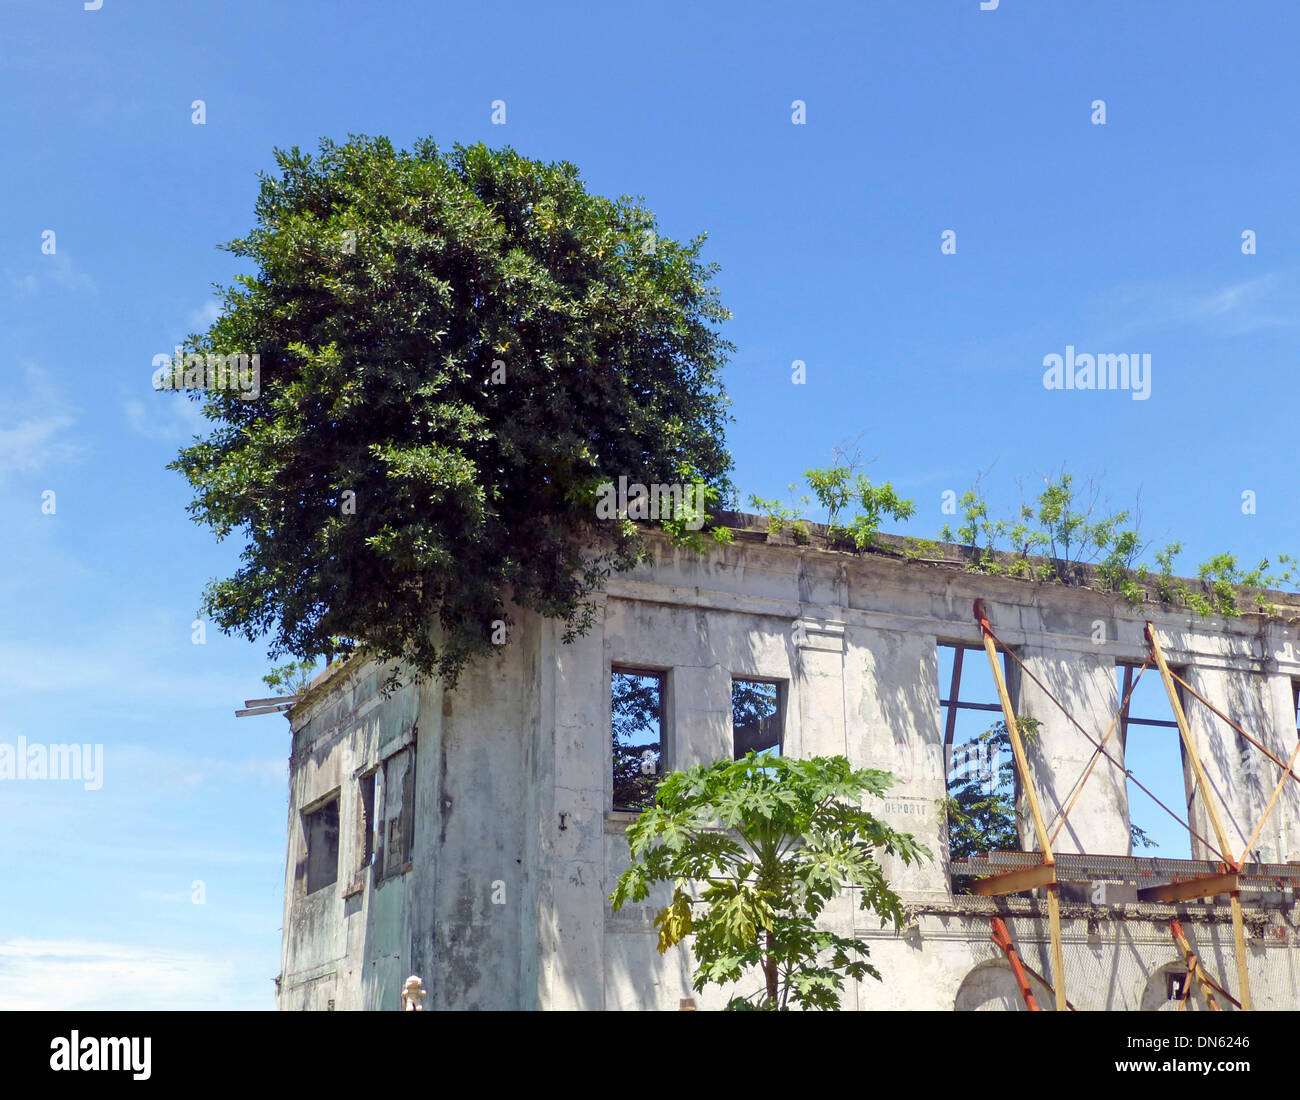 Dilapidated house in the historic centre Casco Viejo, also Casco Antiguo or San Felipe, Panama City, Panama - Stock Image